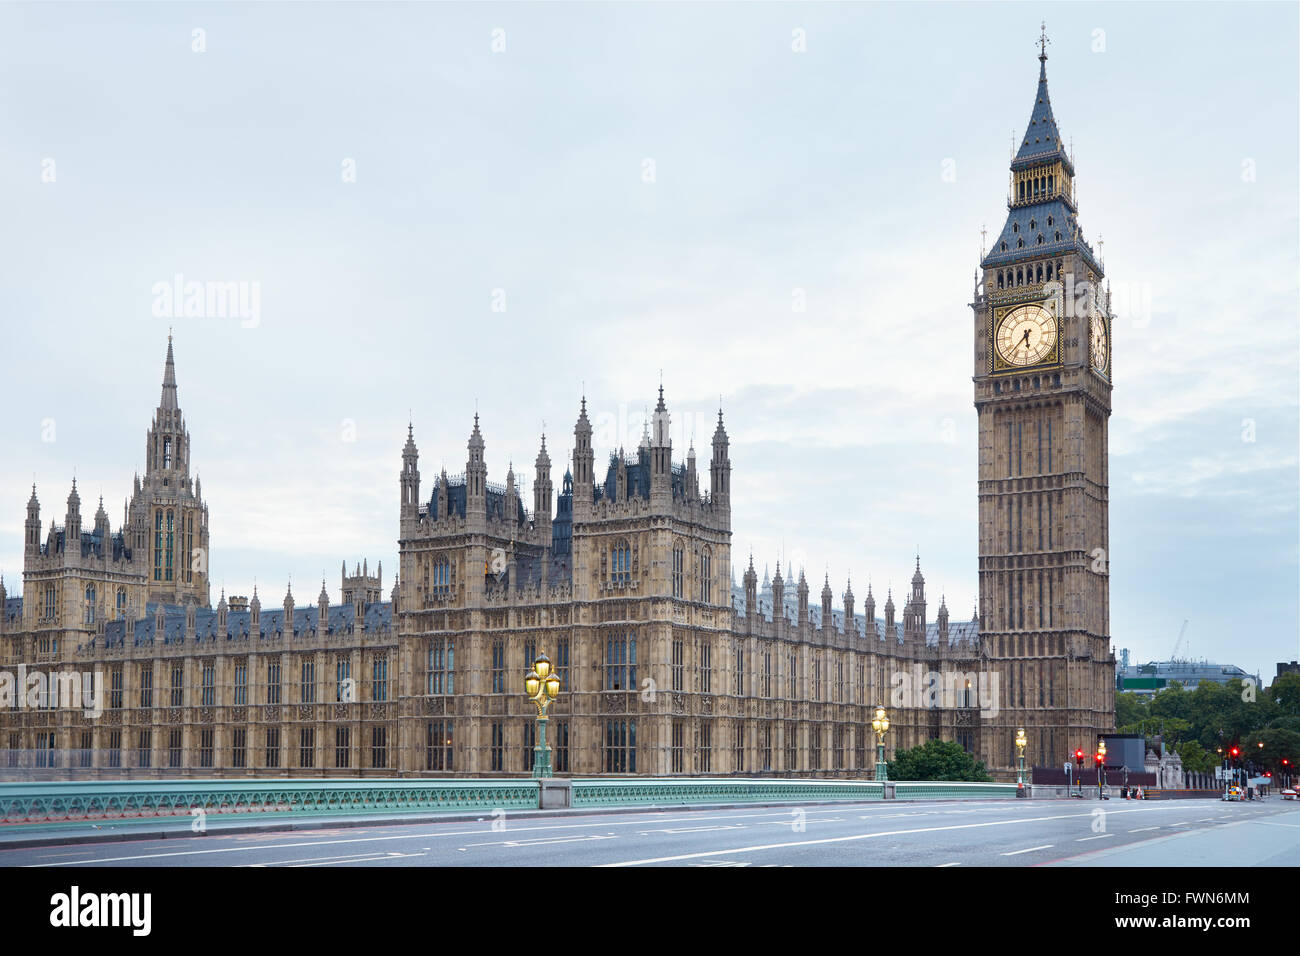 Big Ben and Palace of Westminster in the early morning, empty street in London - Stock Image